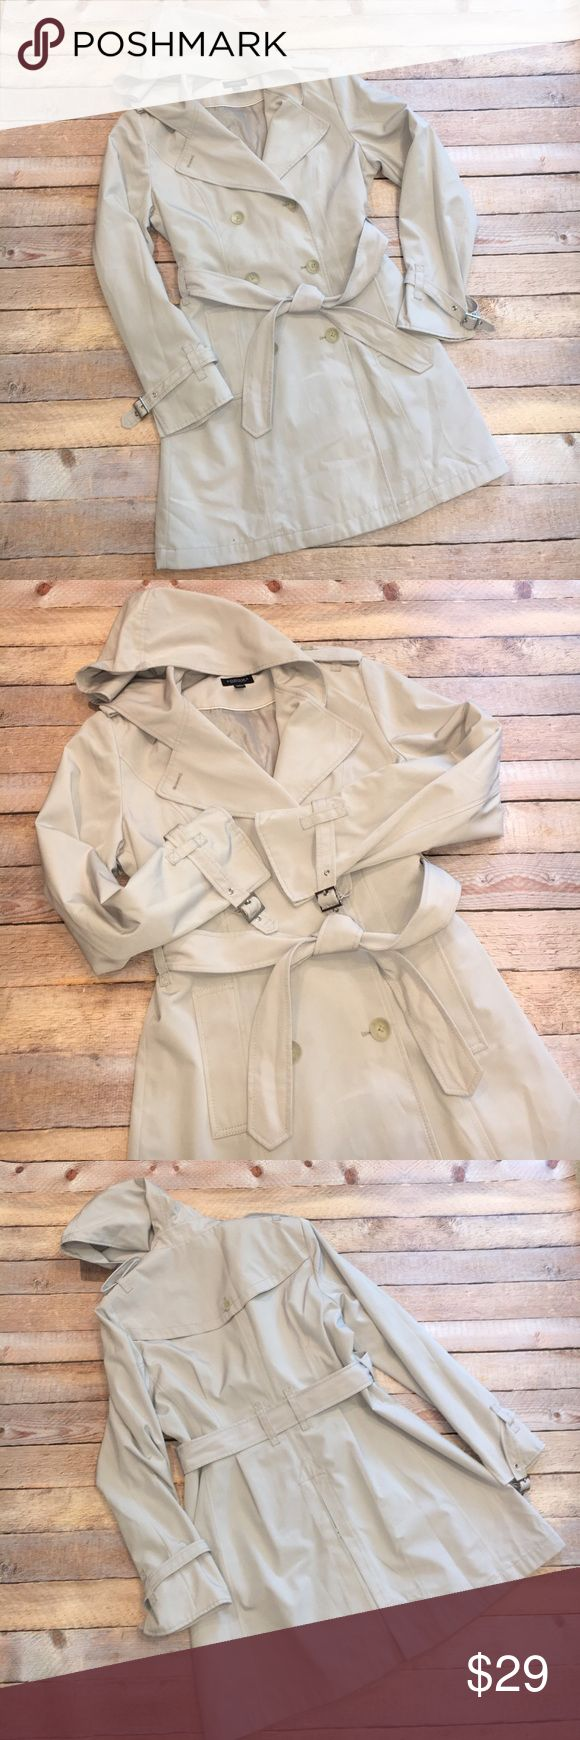 "EUC Sonoma Raincoat with Hood ✔️EUC Sonoma Double Breasted Raincoat with Hood and belt ✔️Gently loved, worn a handful of times  ✔️Great quality coat, fully lined with high end details like buckles at the sleeve cuff ✔️Size M ✔️Waist 34"" unststretched ✔️Bust 40"" unstretched ✔️Length shoulder to hem 32"" ✔️Length underarm to hem 23.5 ✔️Sleeve length shoulder to edge of cuff 23.5"" ✔️100% polyester Sonoma Jackets & Coats Trench Coats"